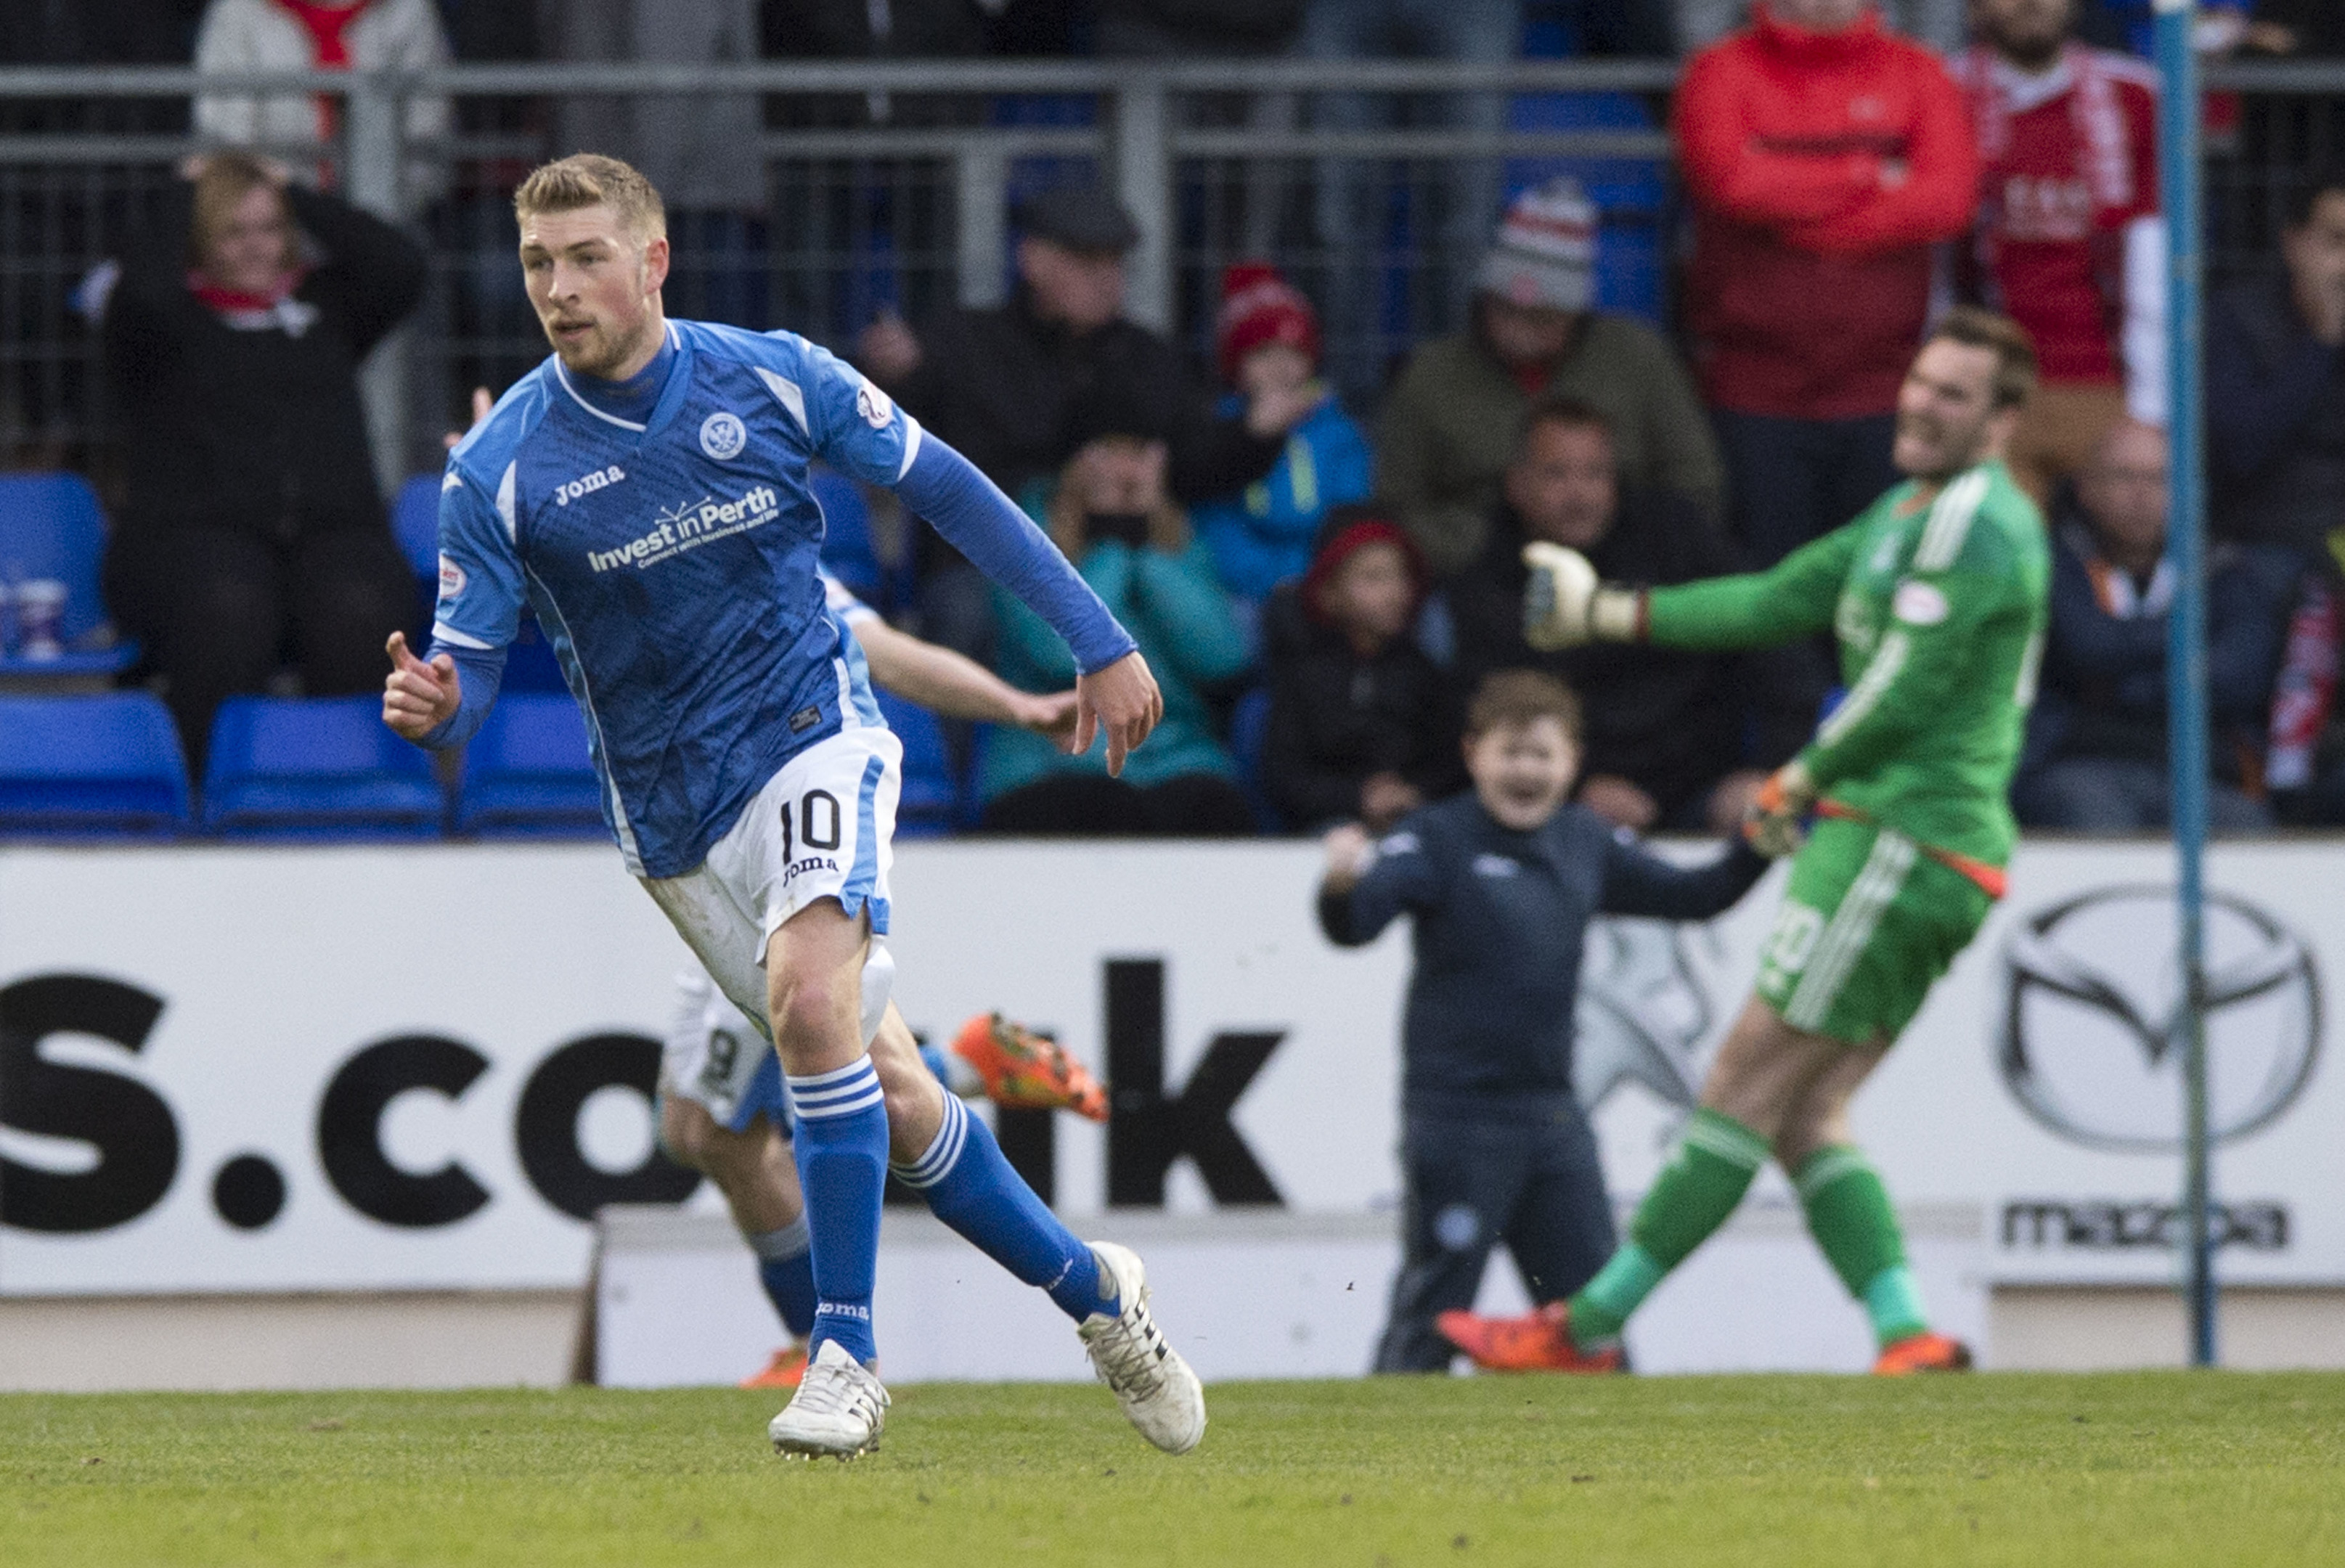 David Wotherspoon celebrates his opening goal.